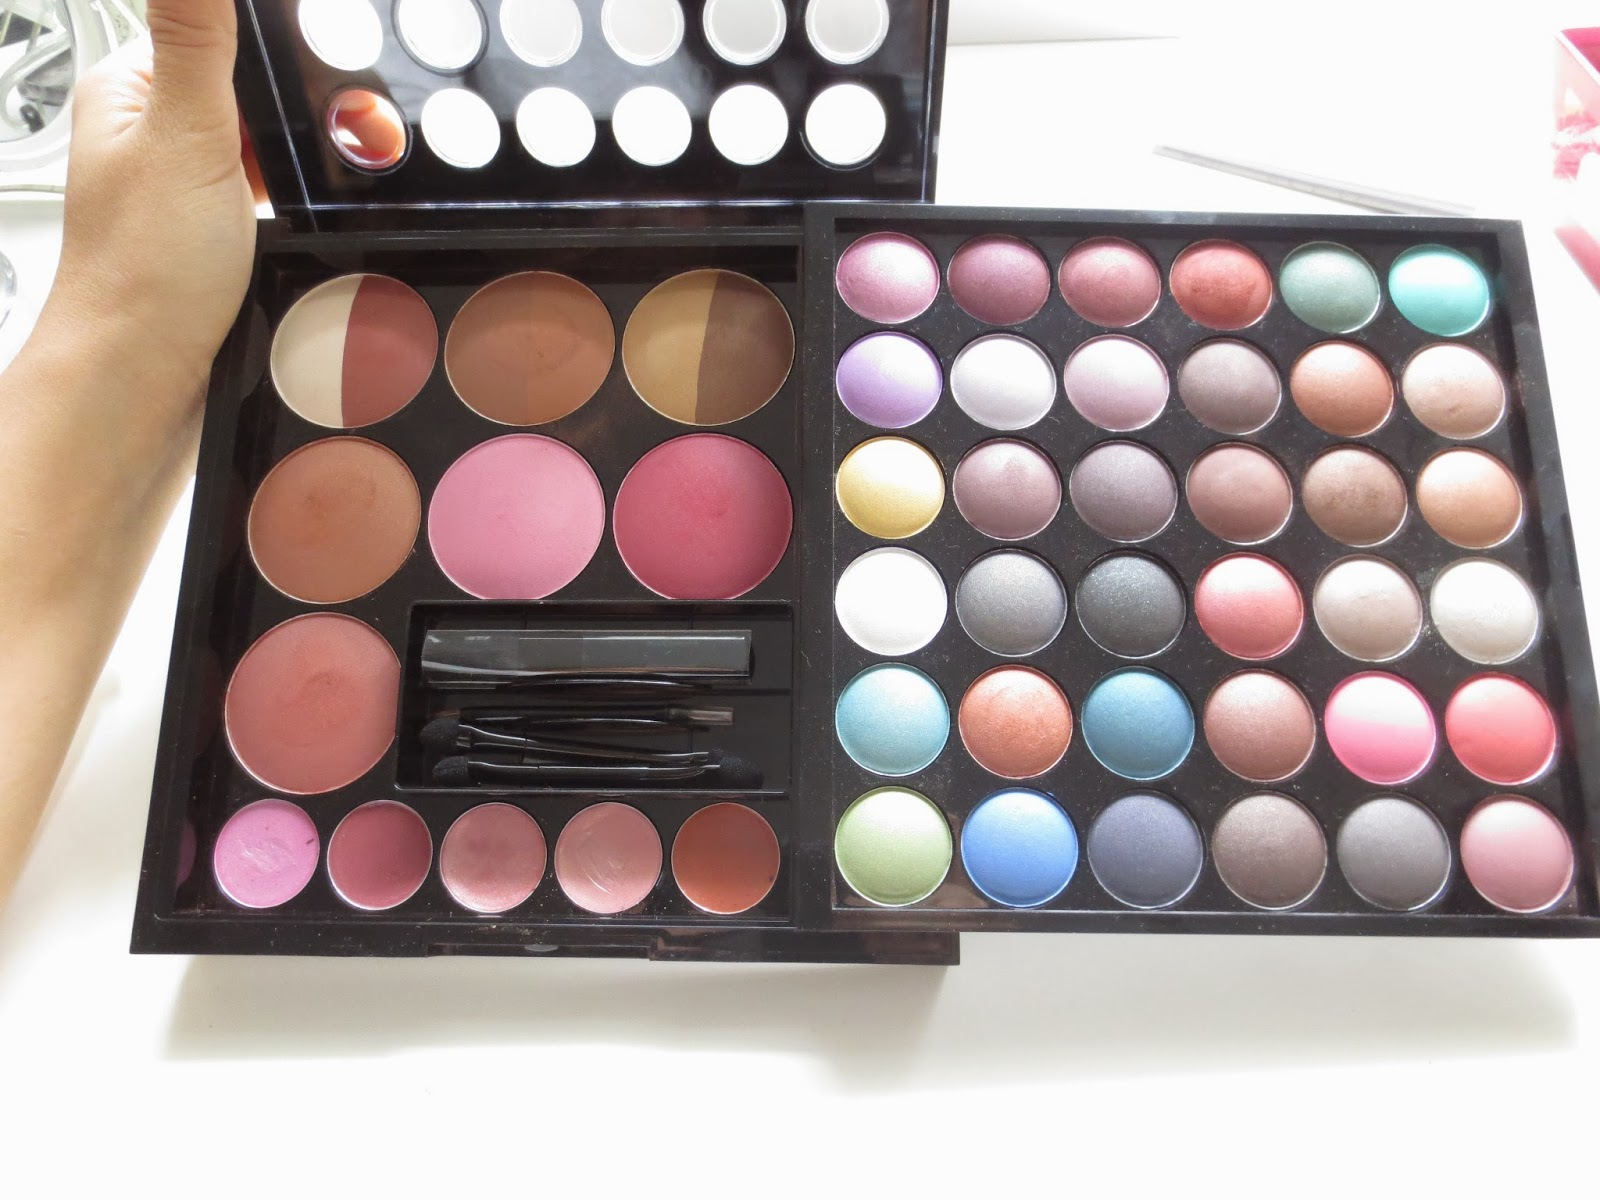 Populaire Laura Vitale's Blog: NYX Makeup Artist Kit Review! HY07